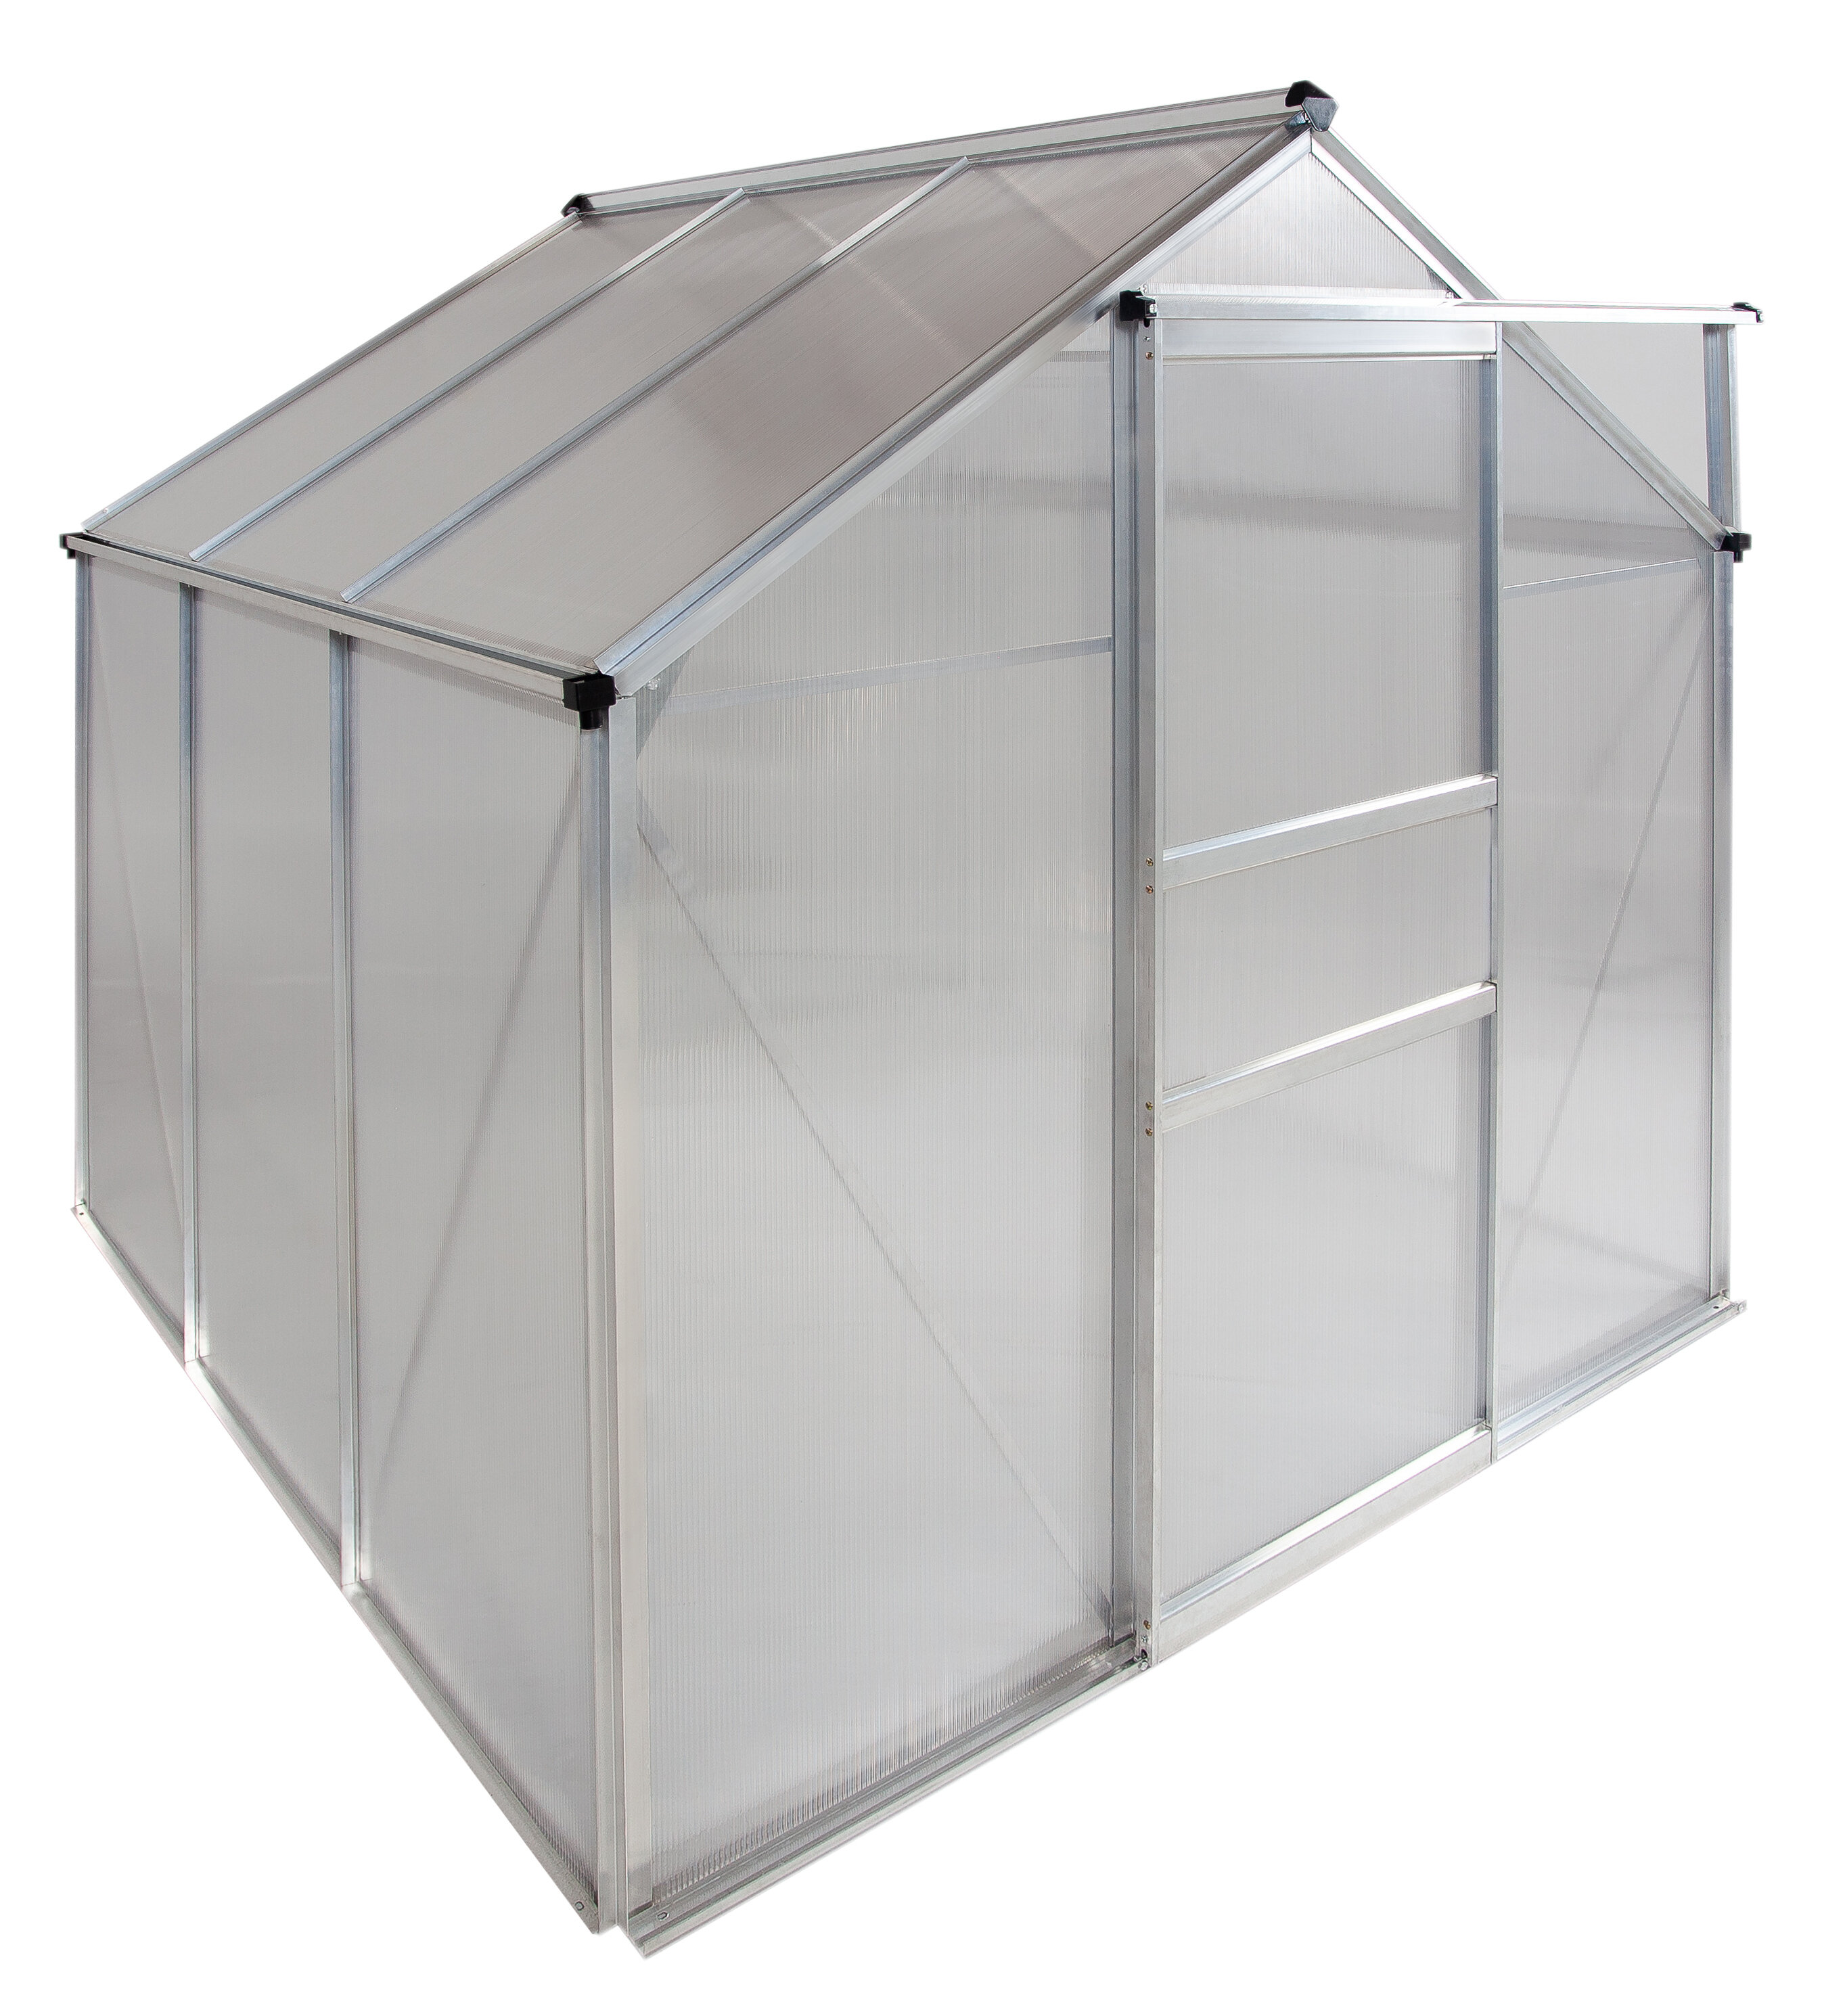 Ogrow Aluminium Greenhouse Walk In 6 X 6 With Sliding Door And Adjustable Roof Vent Wayfair